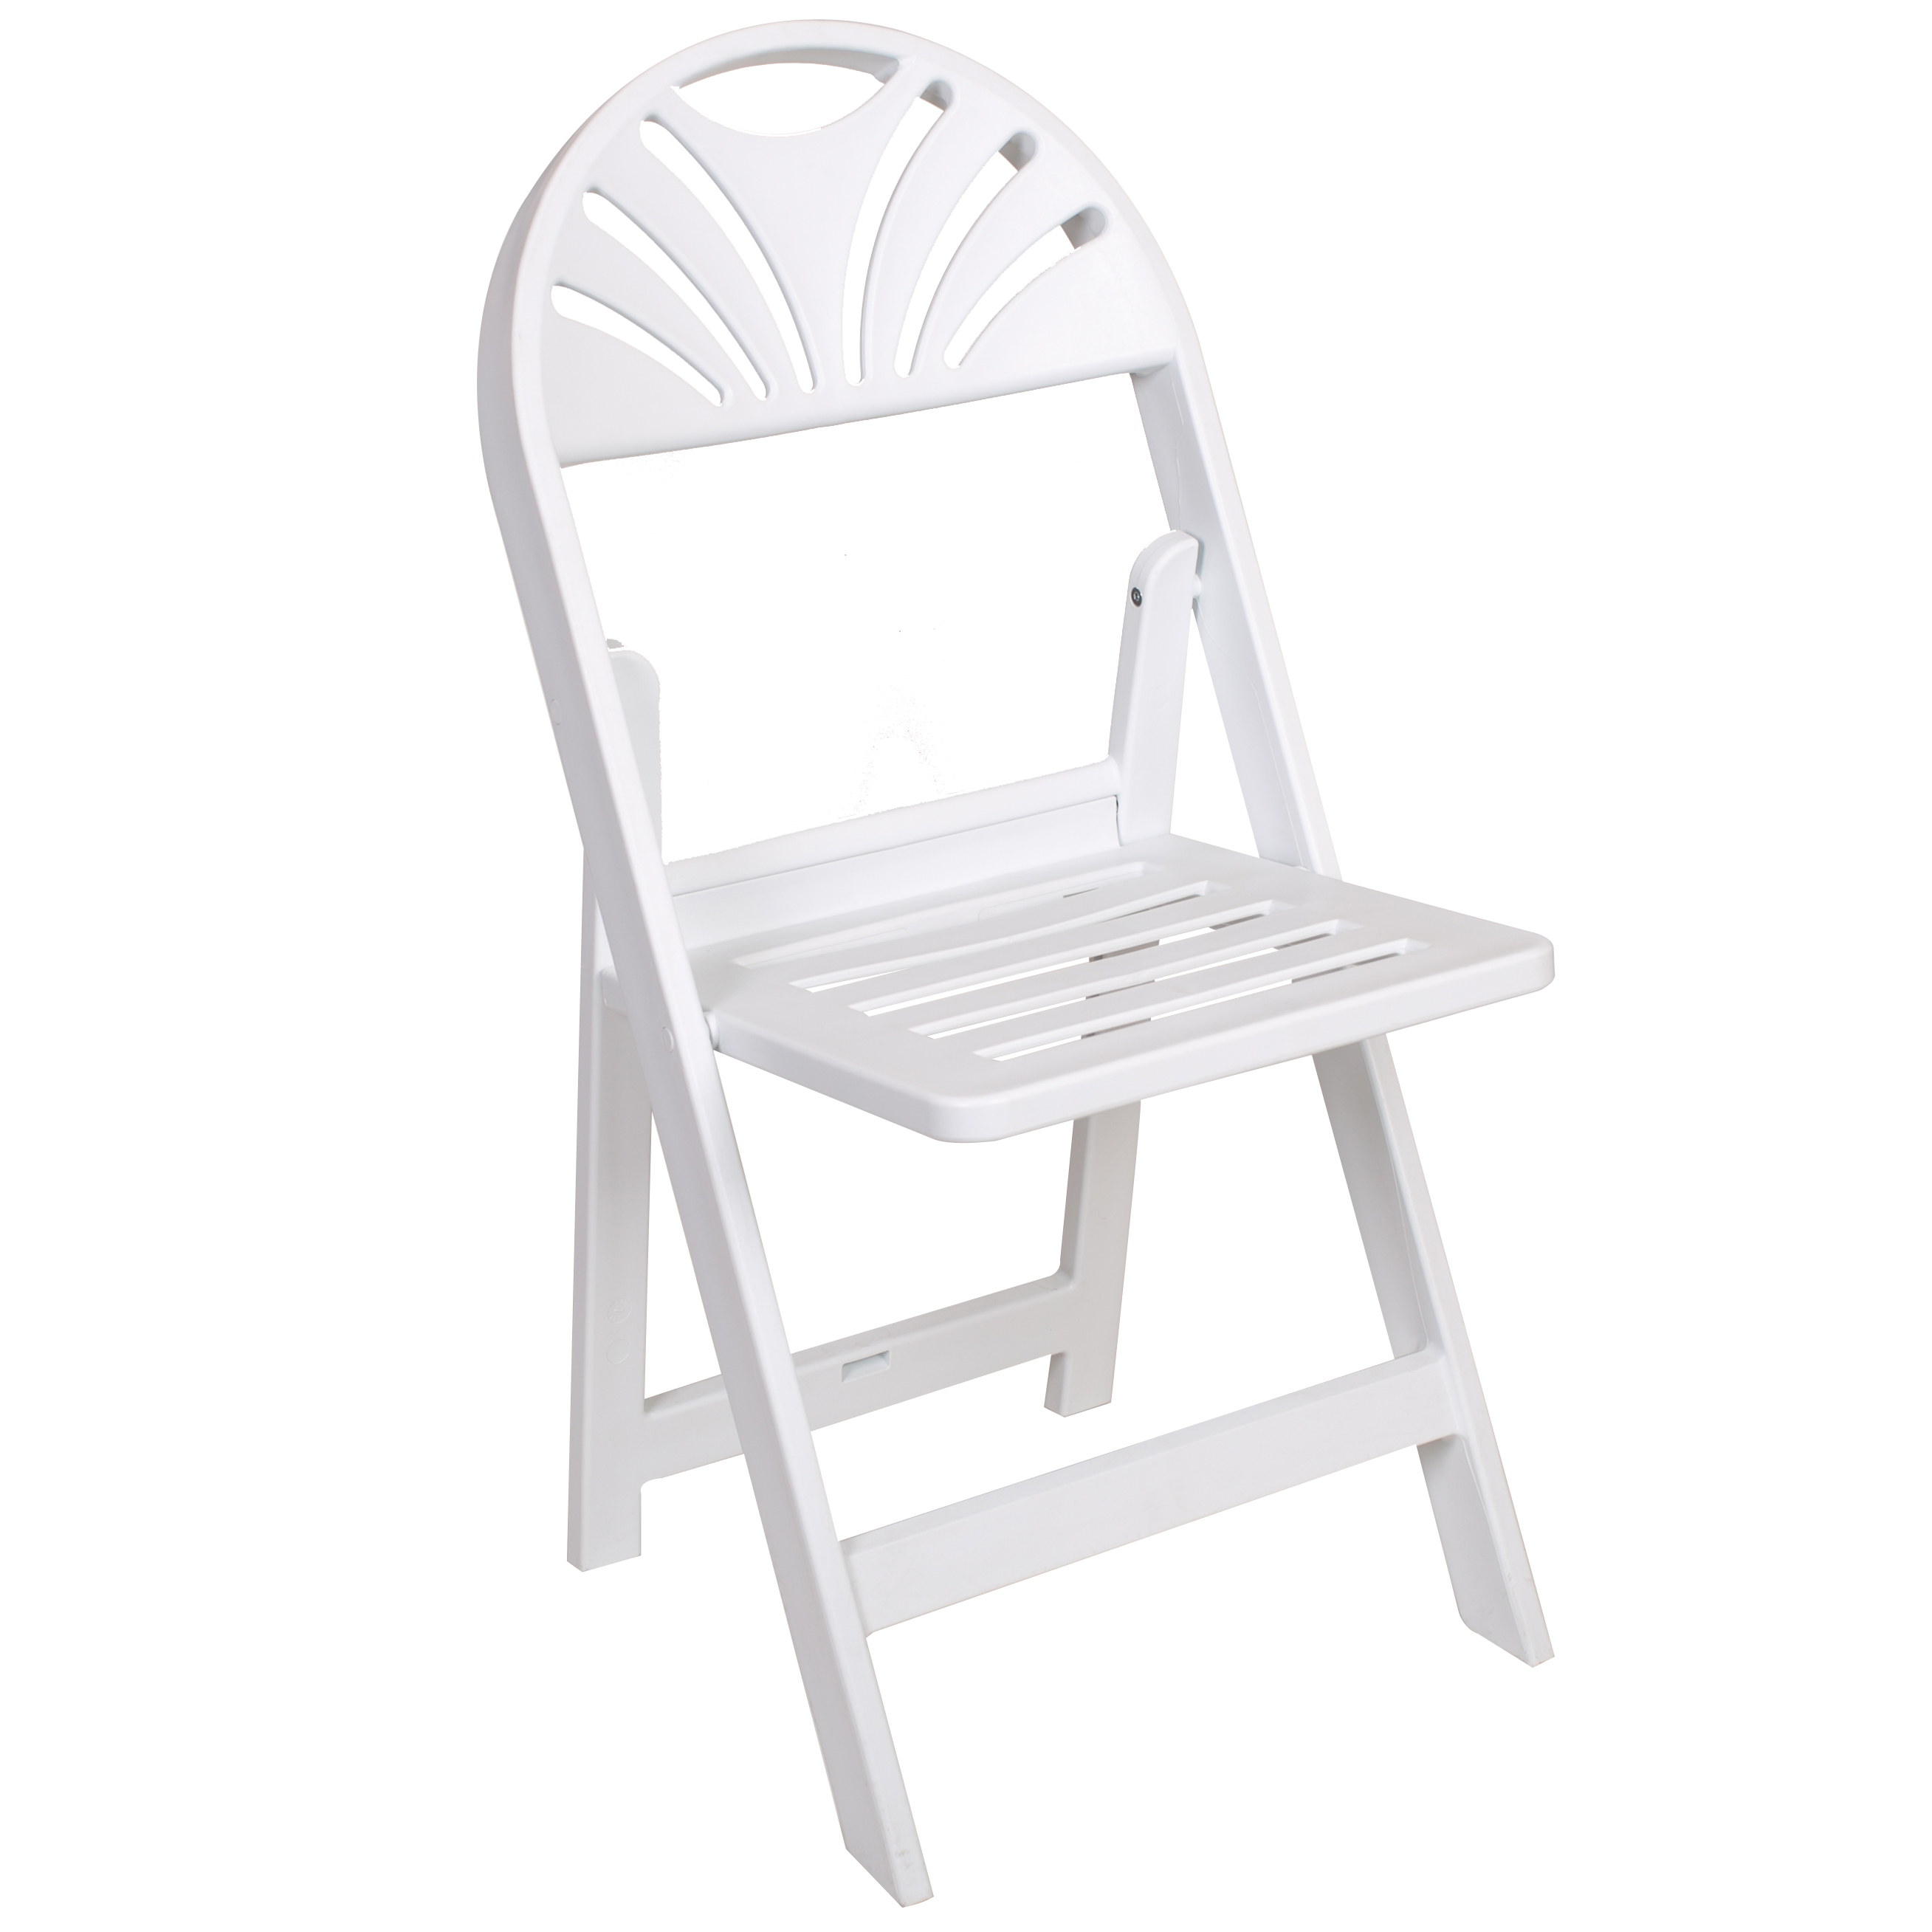 Outdoor Wedding Plastic Folding Chair For Rental Party Event Buy Outdoor Wedding Plastic Folding Chair Foldable Chair Plastic Folding Chair Product On Alibaba Com